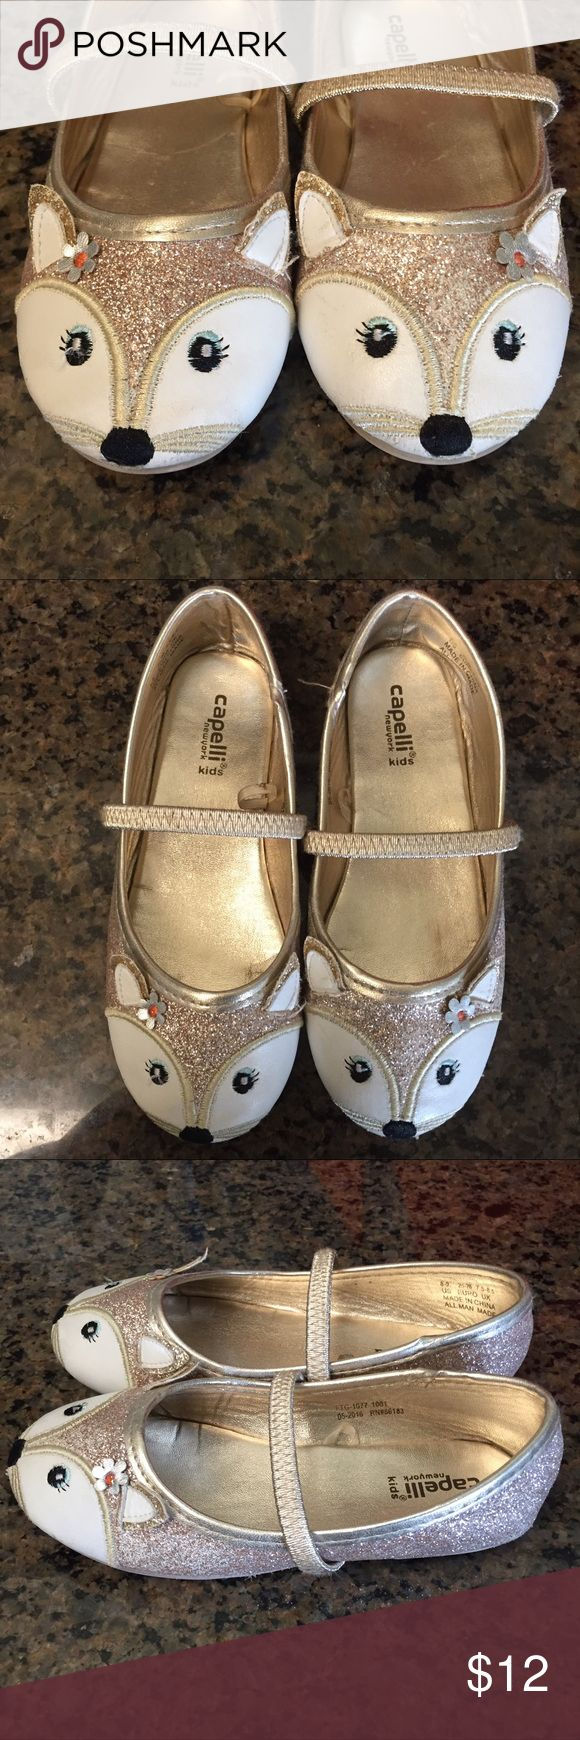 Cutest fox shoes everrrrrrr 🦊 Size 8/9 Adorable fox ballet flats.  ❤️ I hate that my daughter outgrew these!  Cute fox faces on gold glitter shoe.  Flaws shown in photos 6&7 where some of the glitter has rubbed off and some heavier rubbing on the inside of the heels.  Soles and interior are in excellent condition. Size 8/9. Happy Poshing! ✨ Capelli of New York Shoes Dress Shoes